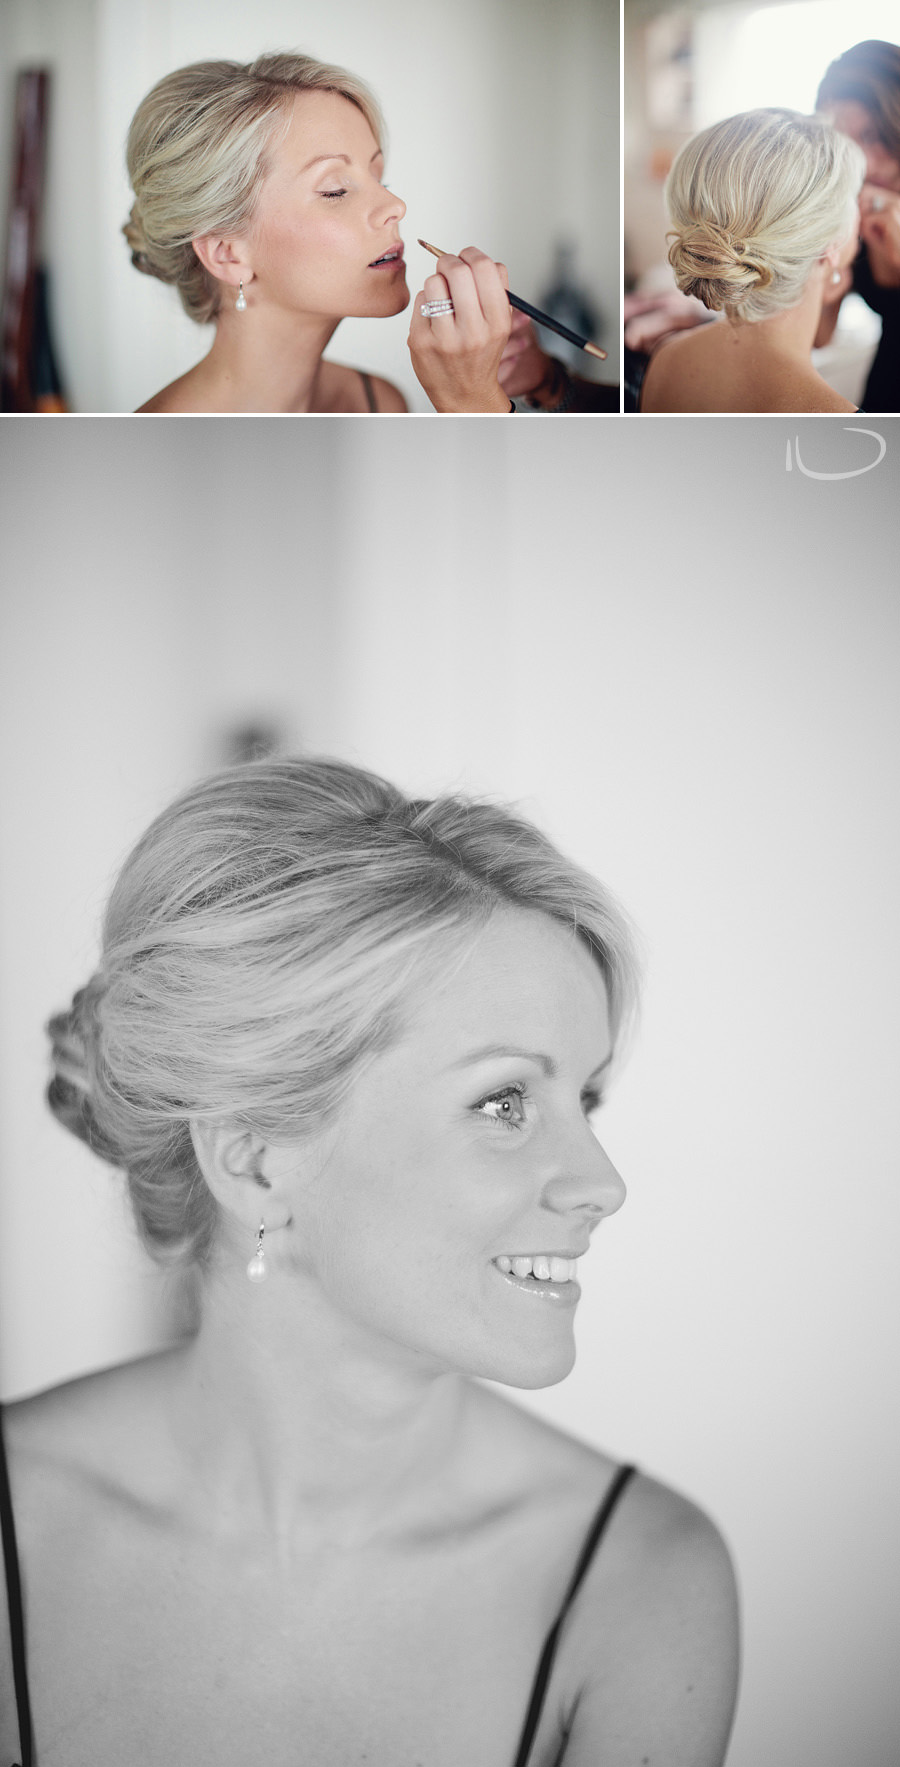 Northern Beaches Wedding Photographer: Bride getting ready